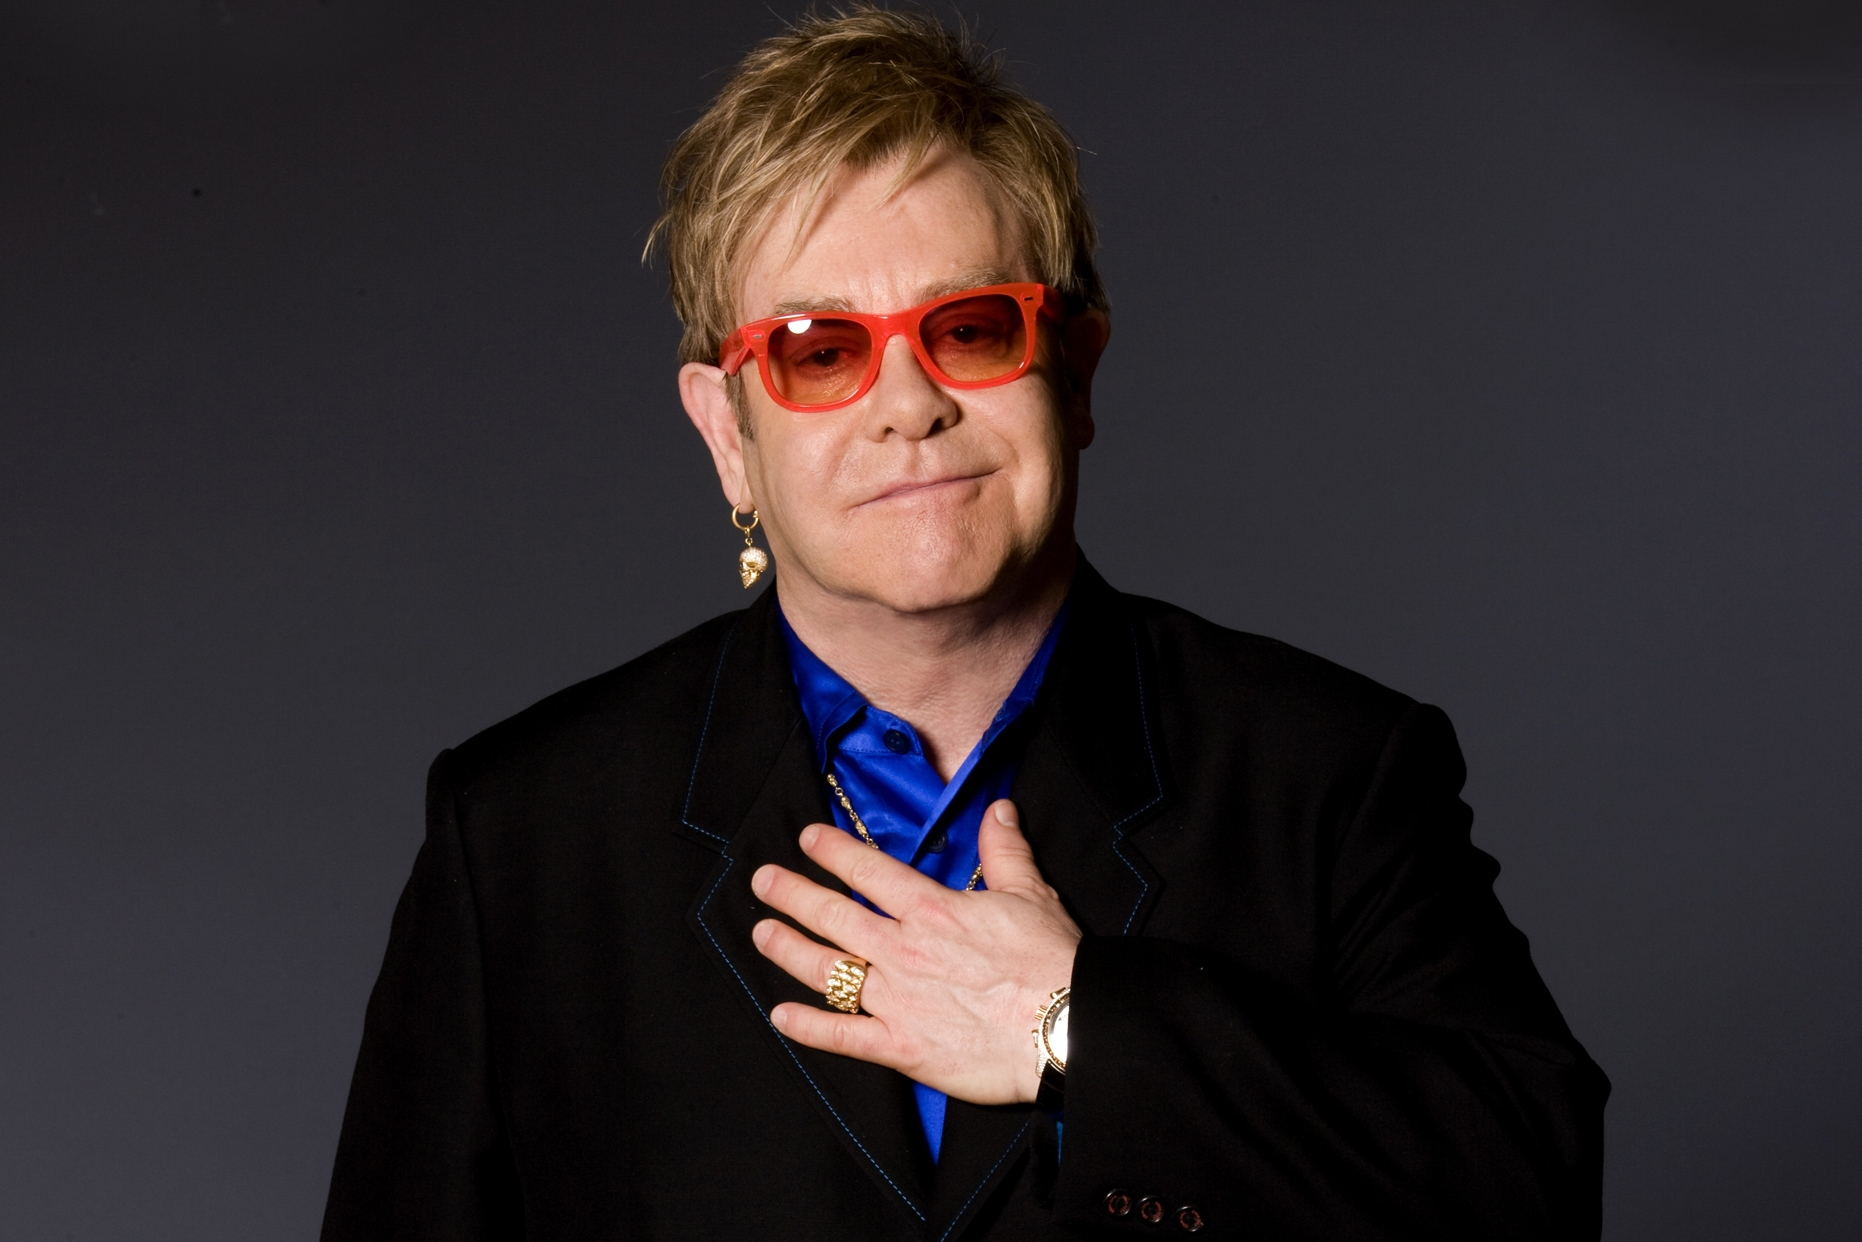 931439 Elton John Wallpapers 1862x1242